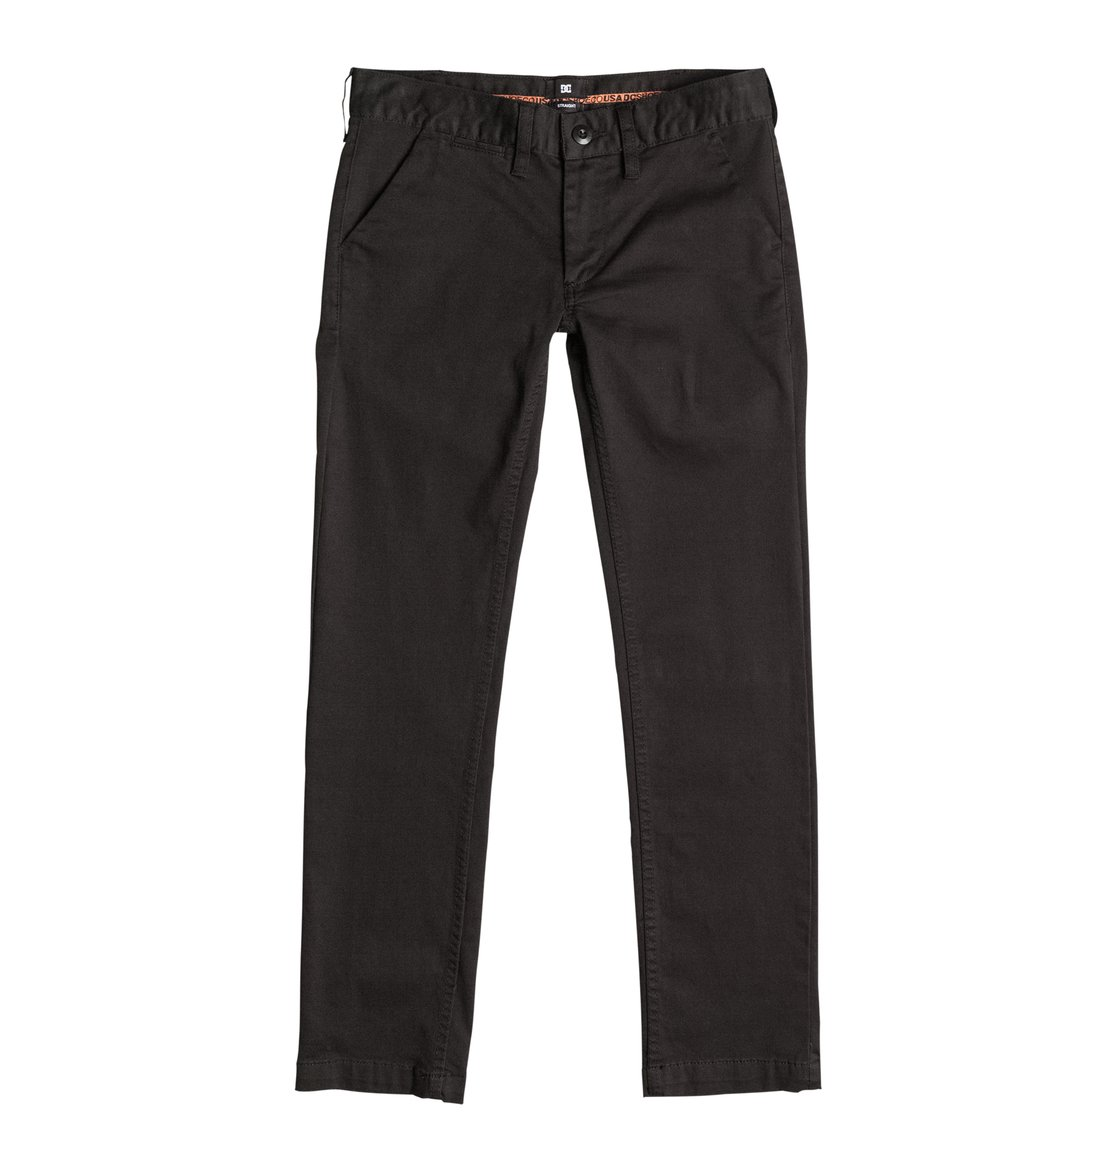 Worker Slim Fit Chino - Dcshoes������� ����� Worker Slim Fit Chino �� DC Shoes. <br>��������������: ������ ���������� �����, ����� ����, ��������� �������� �������, ������� �� ������, ����� � ��������� DC ��� ������ ��������, ��������� ������ ��� ������ �������, ������������ ������� ������� �����. <br>������: 98% ������, 2% �������.<br>